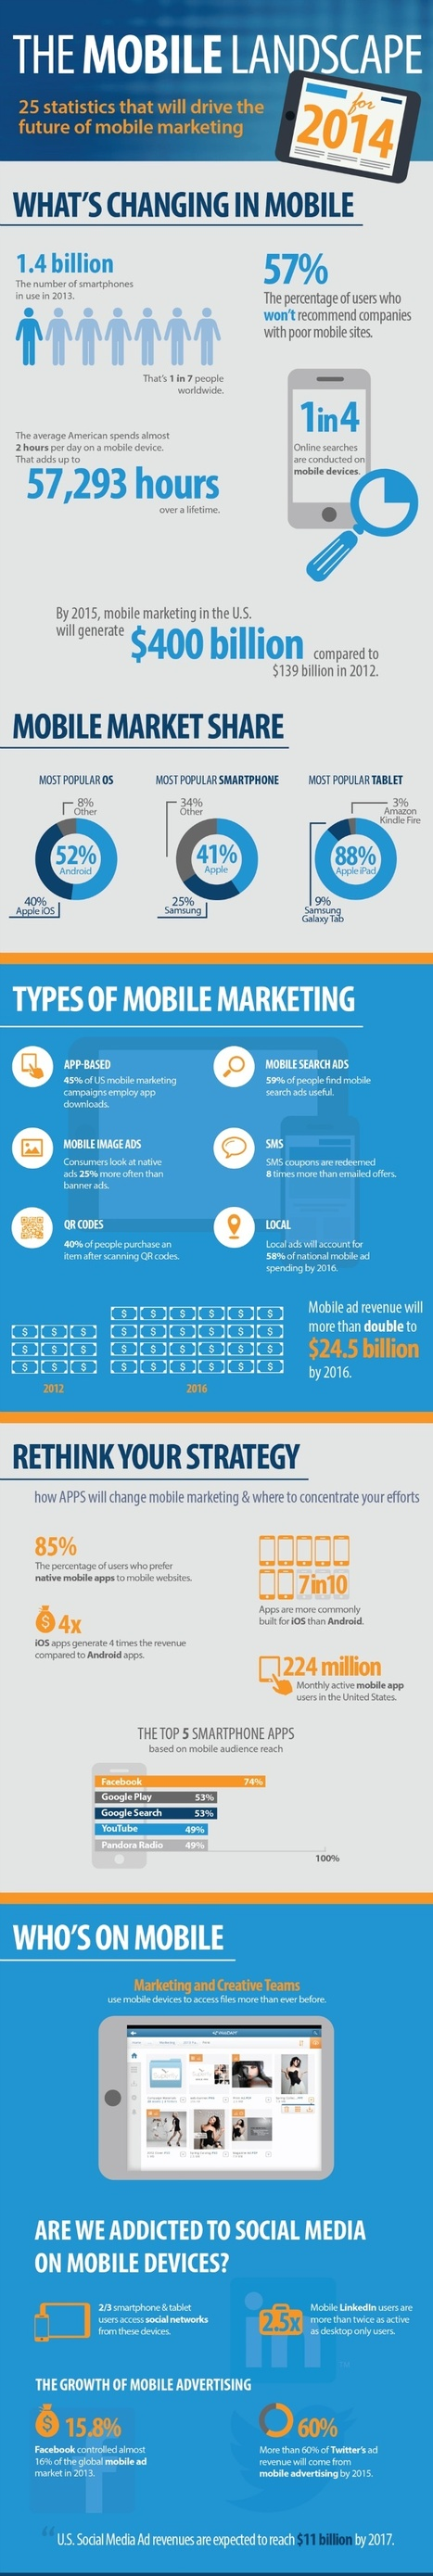 Social Media Addiction and Other Mobile Marketing Trends [Infographic] | Marketing | Scoop.it